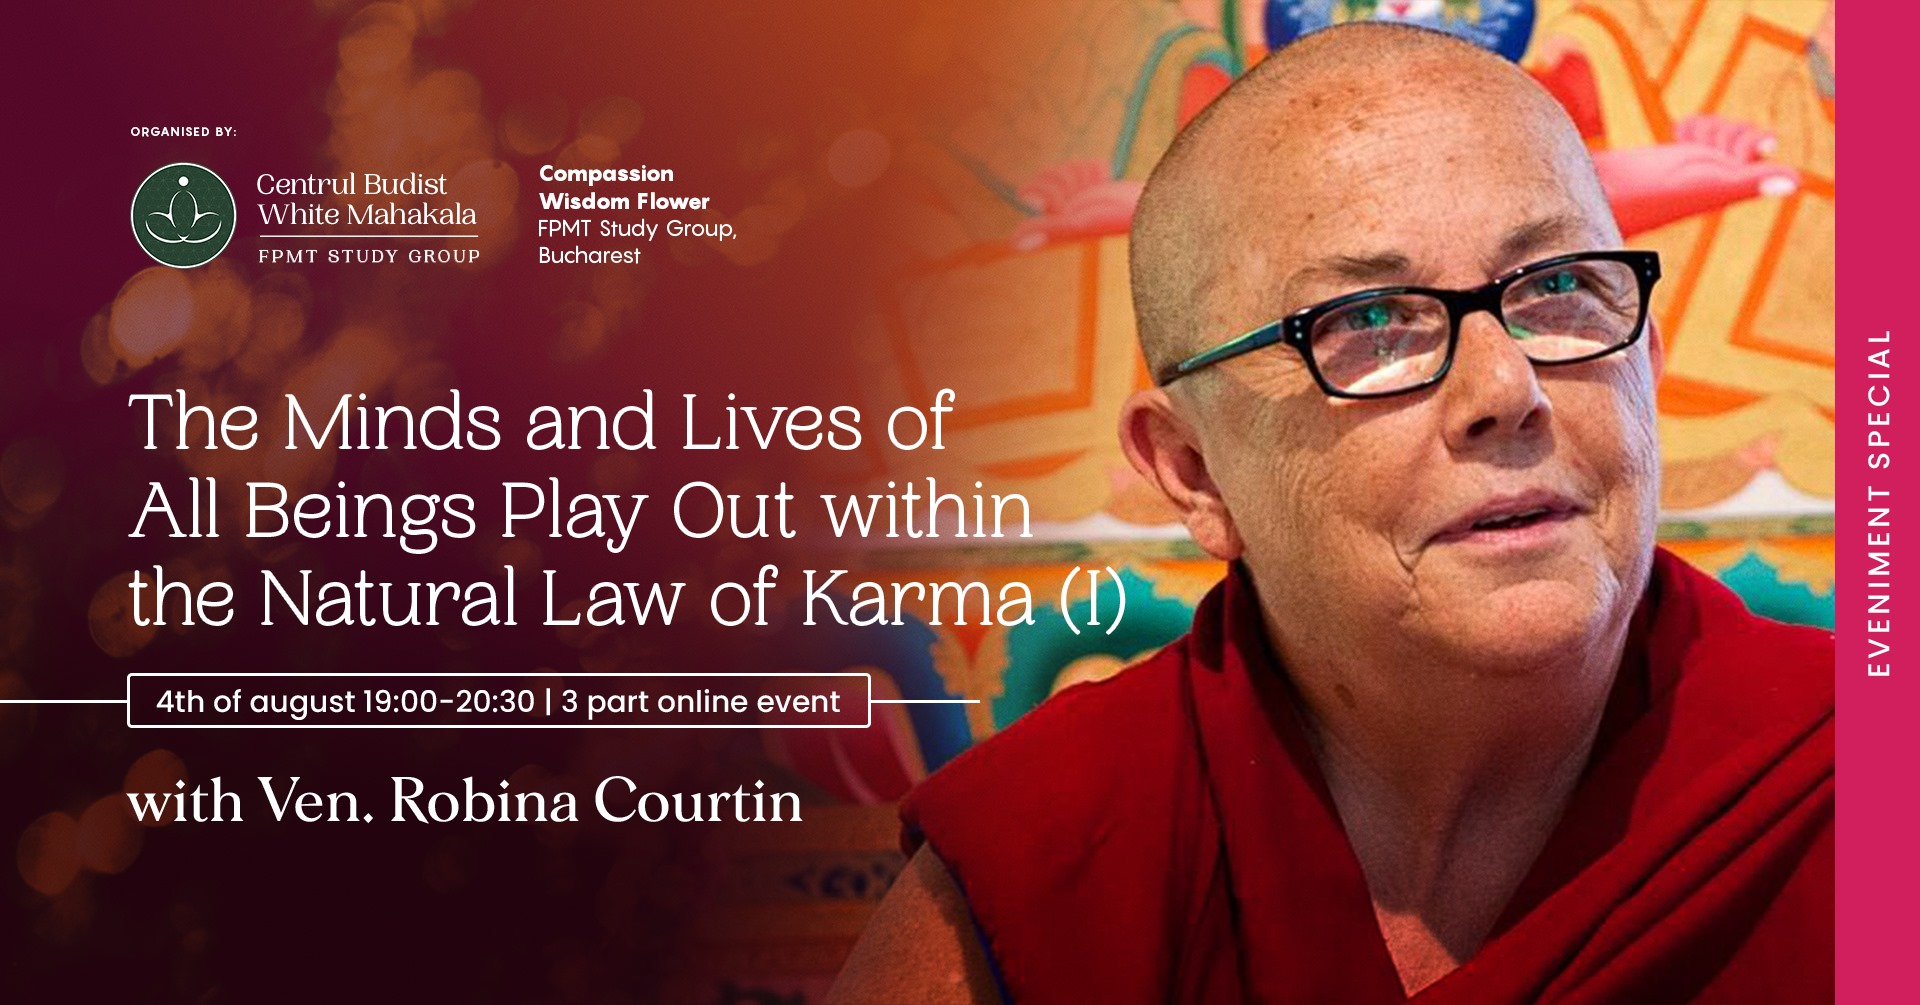 The Minds and Lives of All Beings Play Out within the Natural Law of Karma(I)